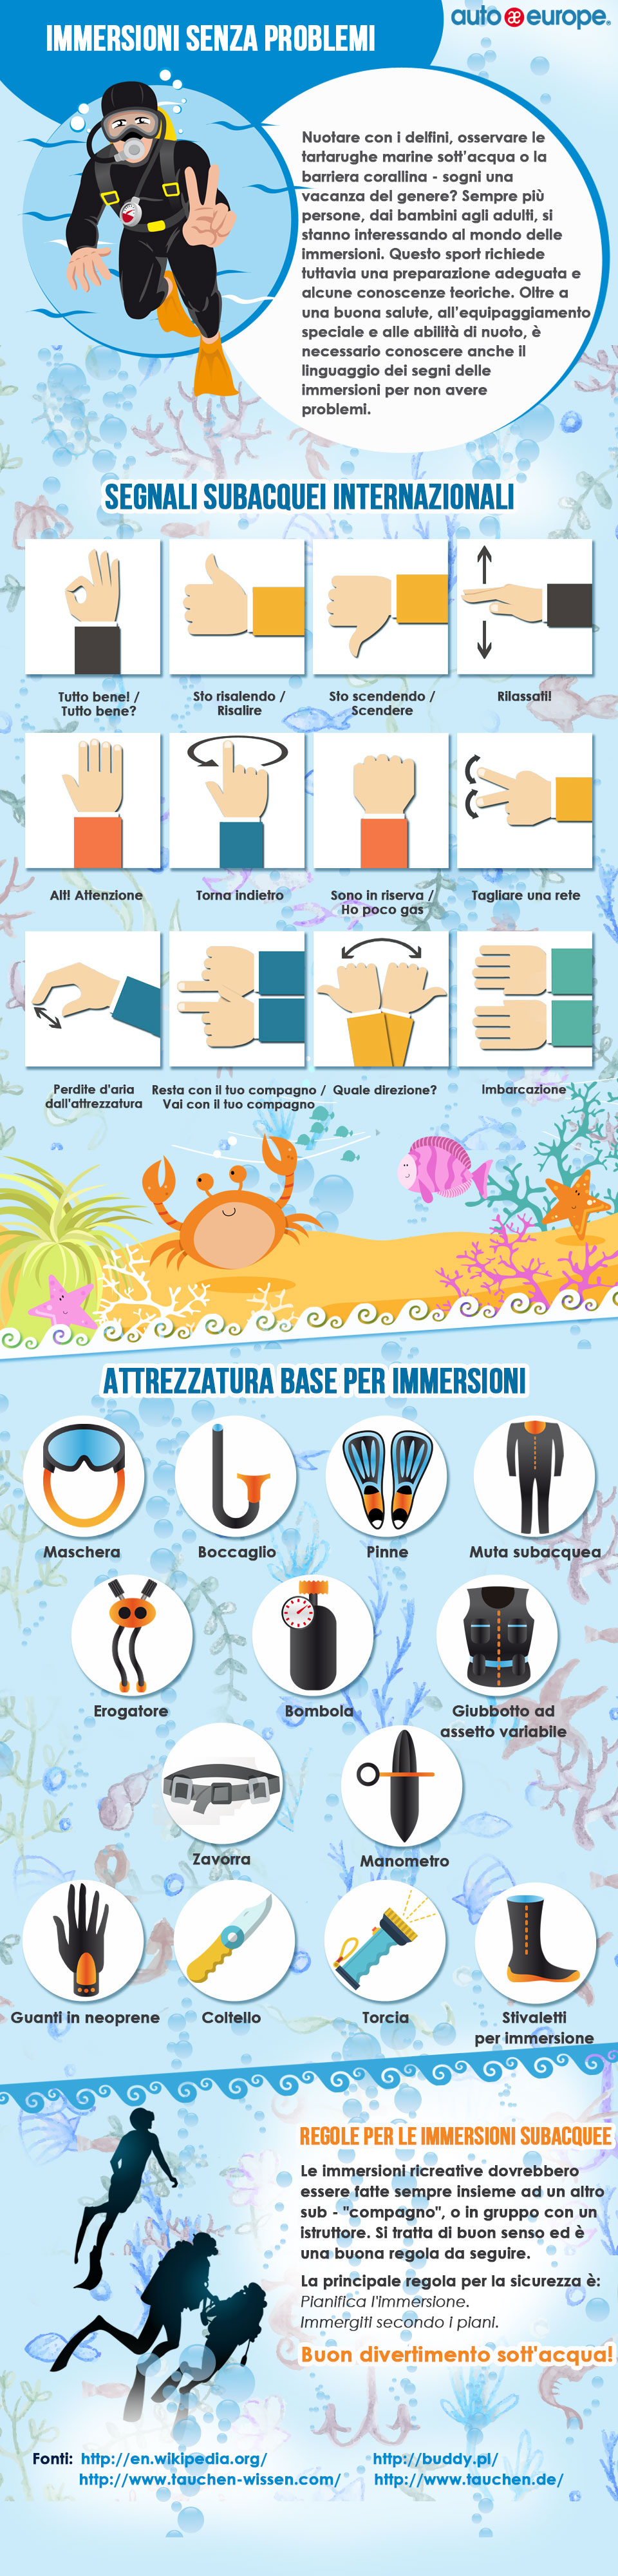 infografica-immersioni